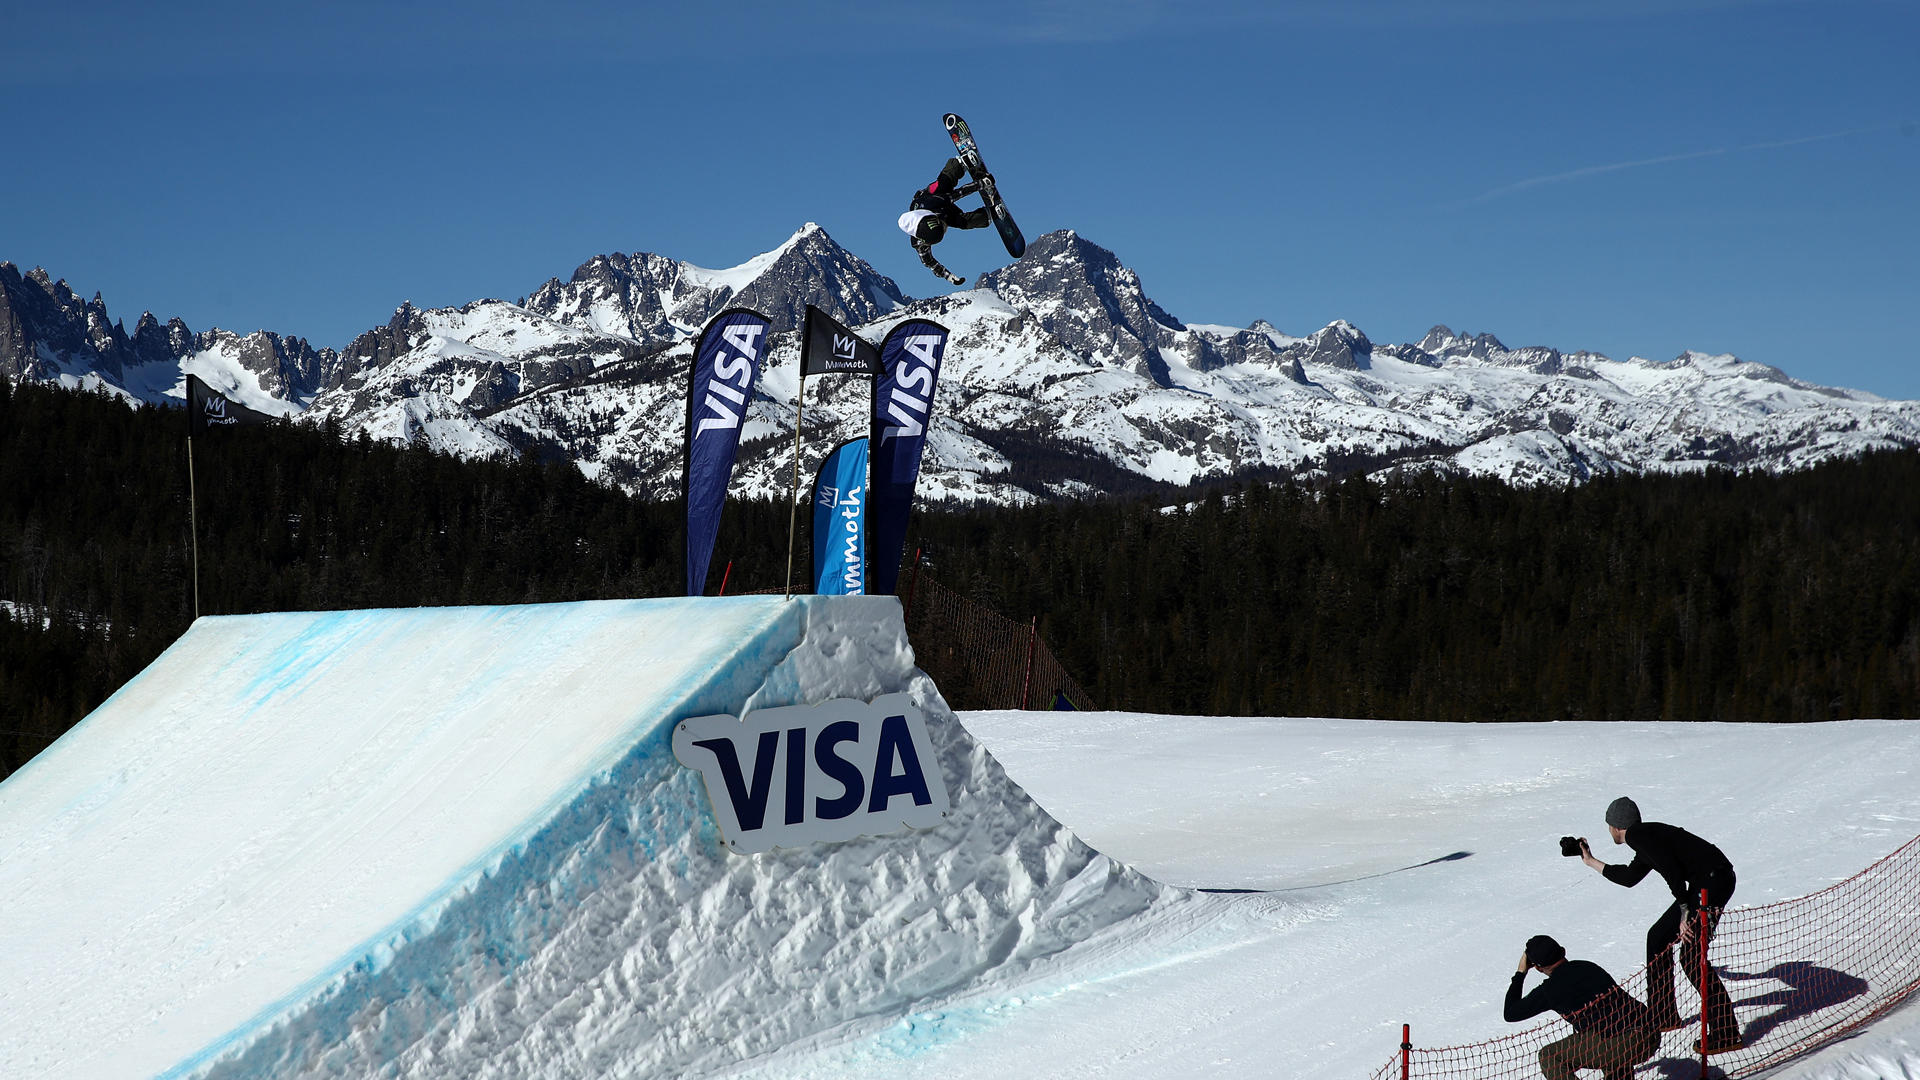 Jamie Anderson of the United States goes over a jump during the Women's Snowboard Slopestyle Finals at the 2020 U.S. Grand Prix at Mammoth Mountain on February 01, 2020 in Mammoth, California. Anderson won the event. (Ezra Shaw/Getty Images)